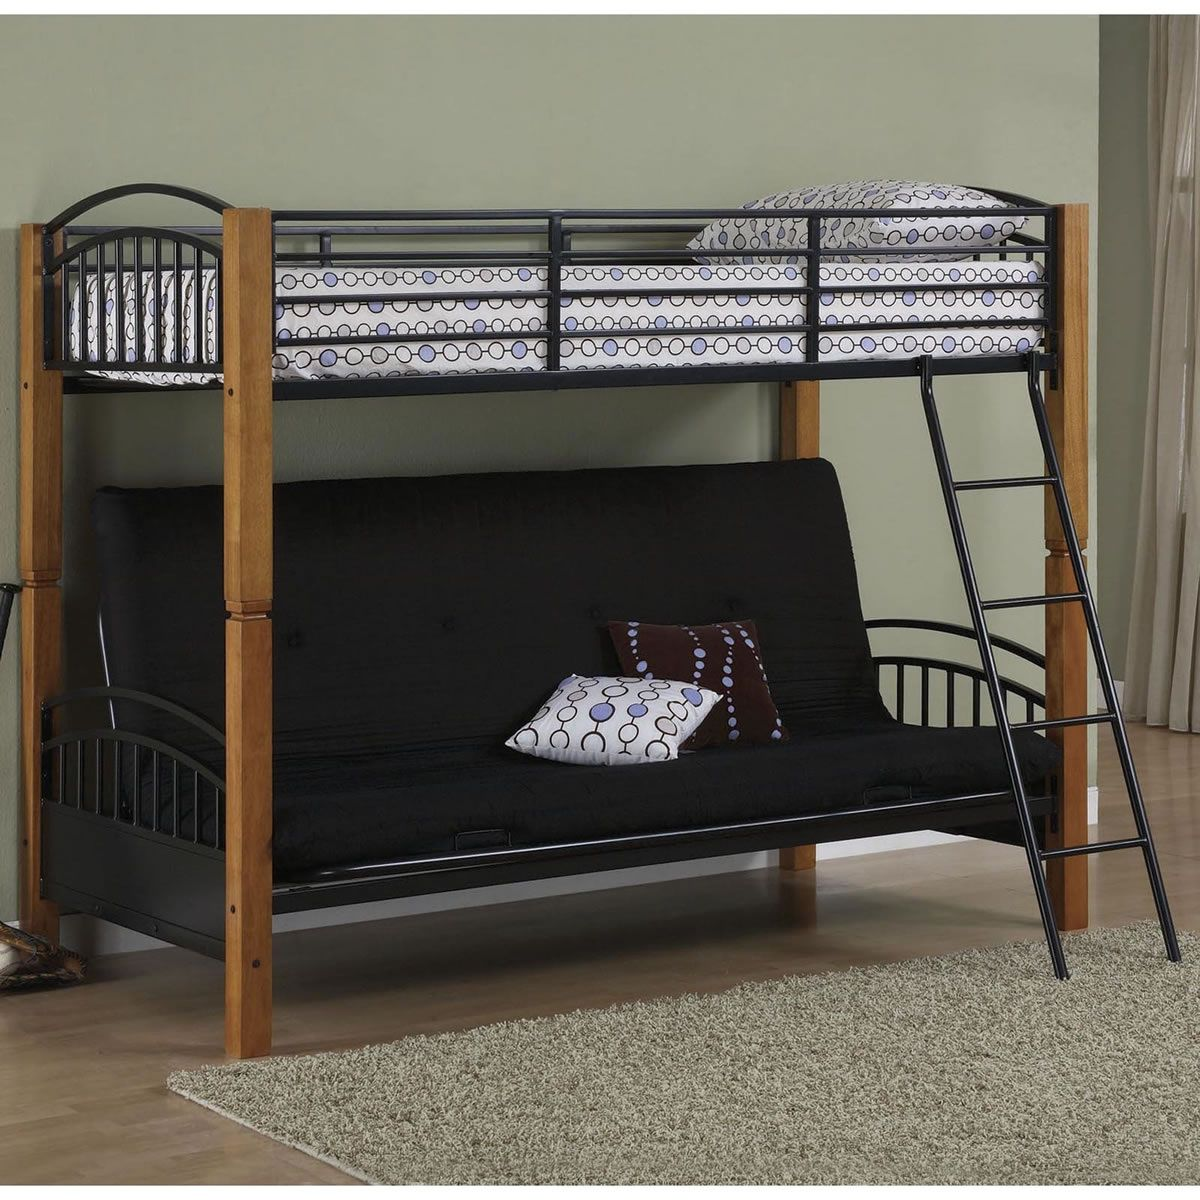 55 Wood And Metal Futon Bunk Bed Interior Design For Bedrooms Check More At